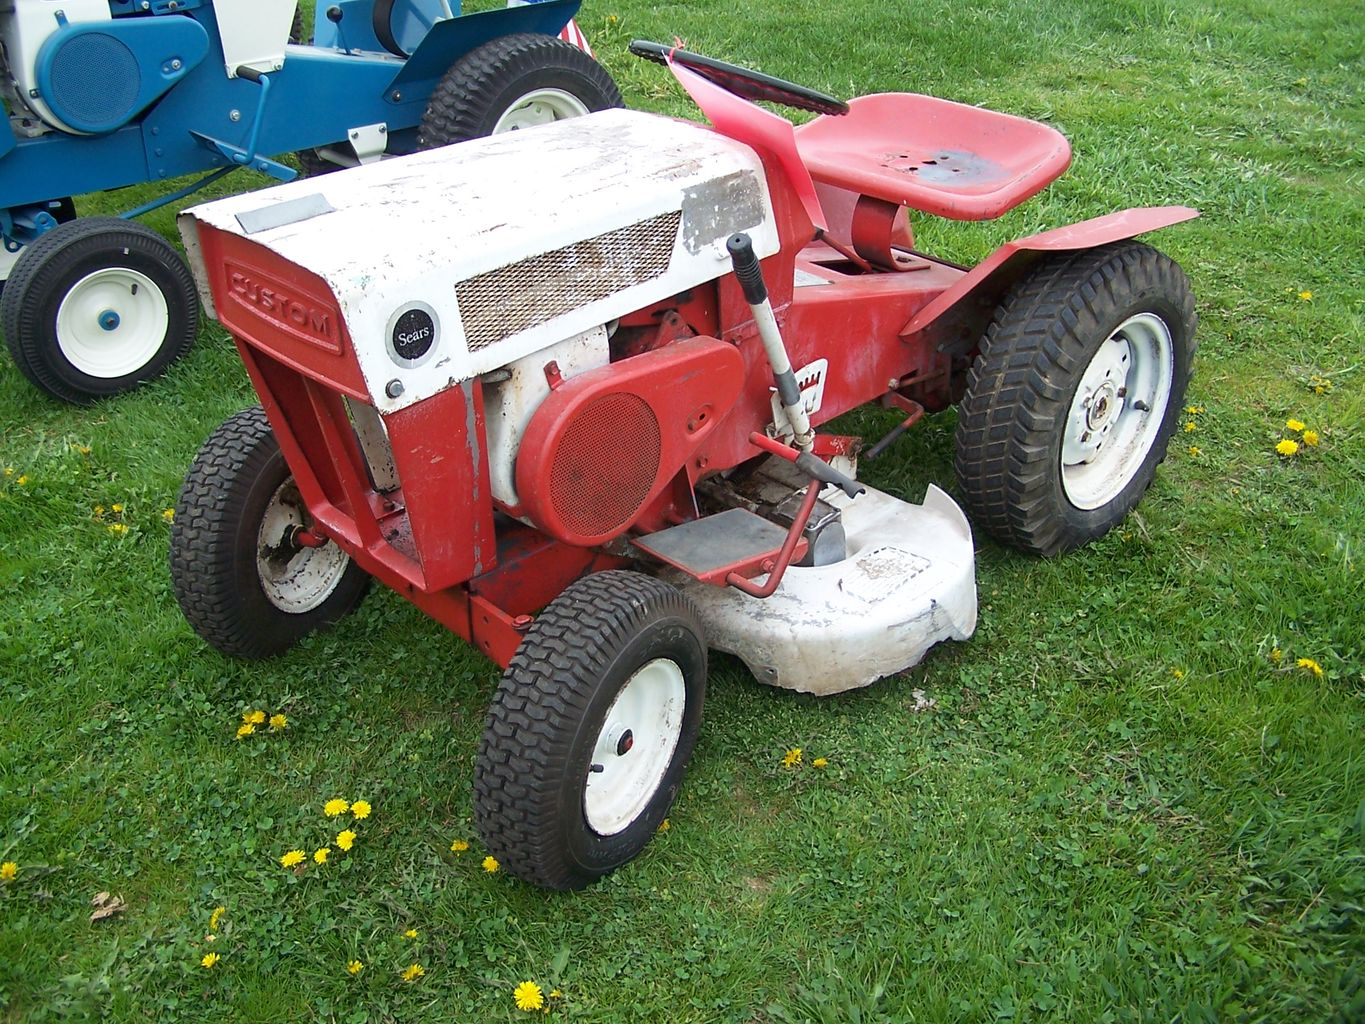 Searts Craftsman Troubleshooting Garden Tractor Info